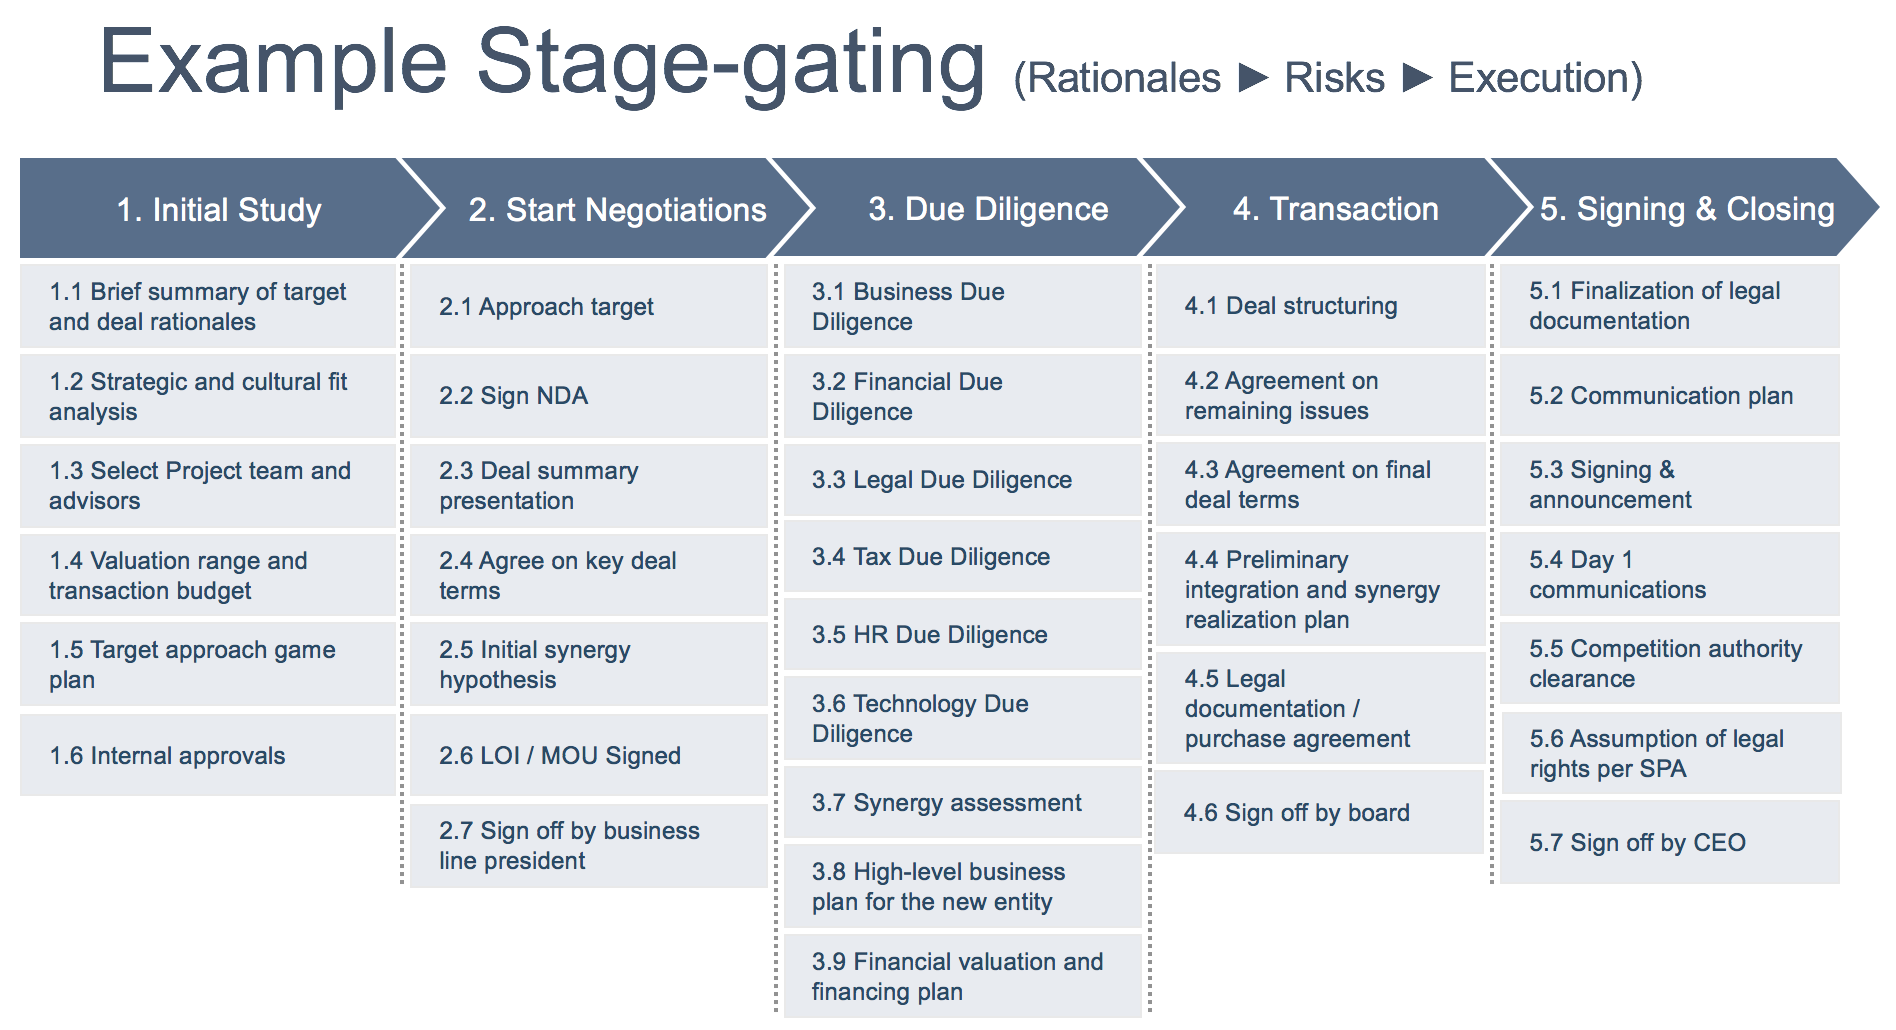 example-stage-gatingv2.png